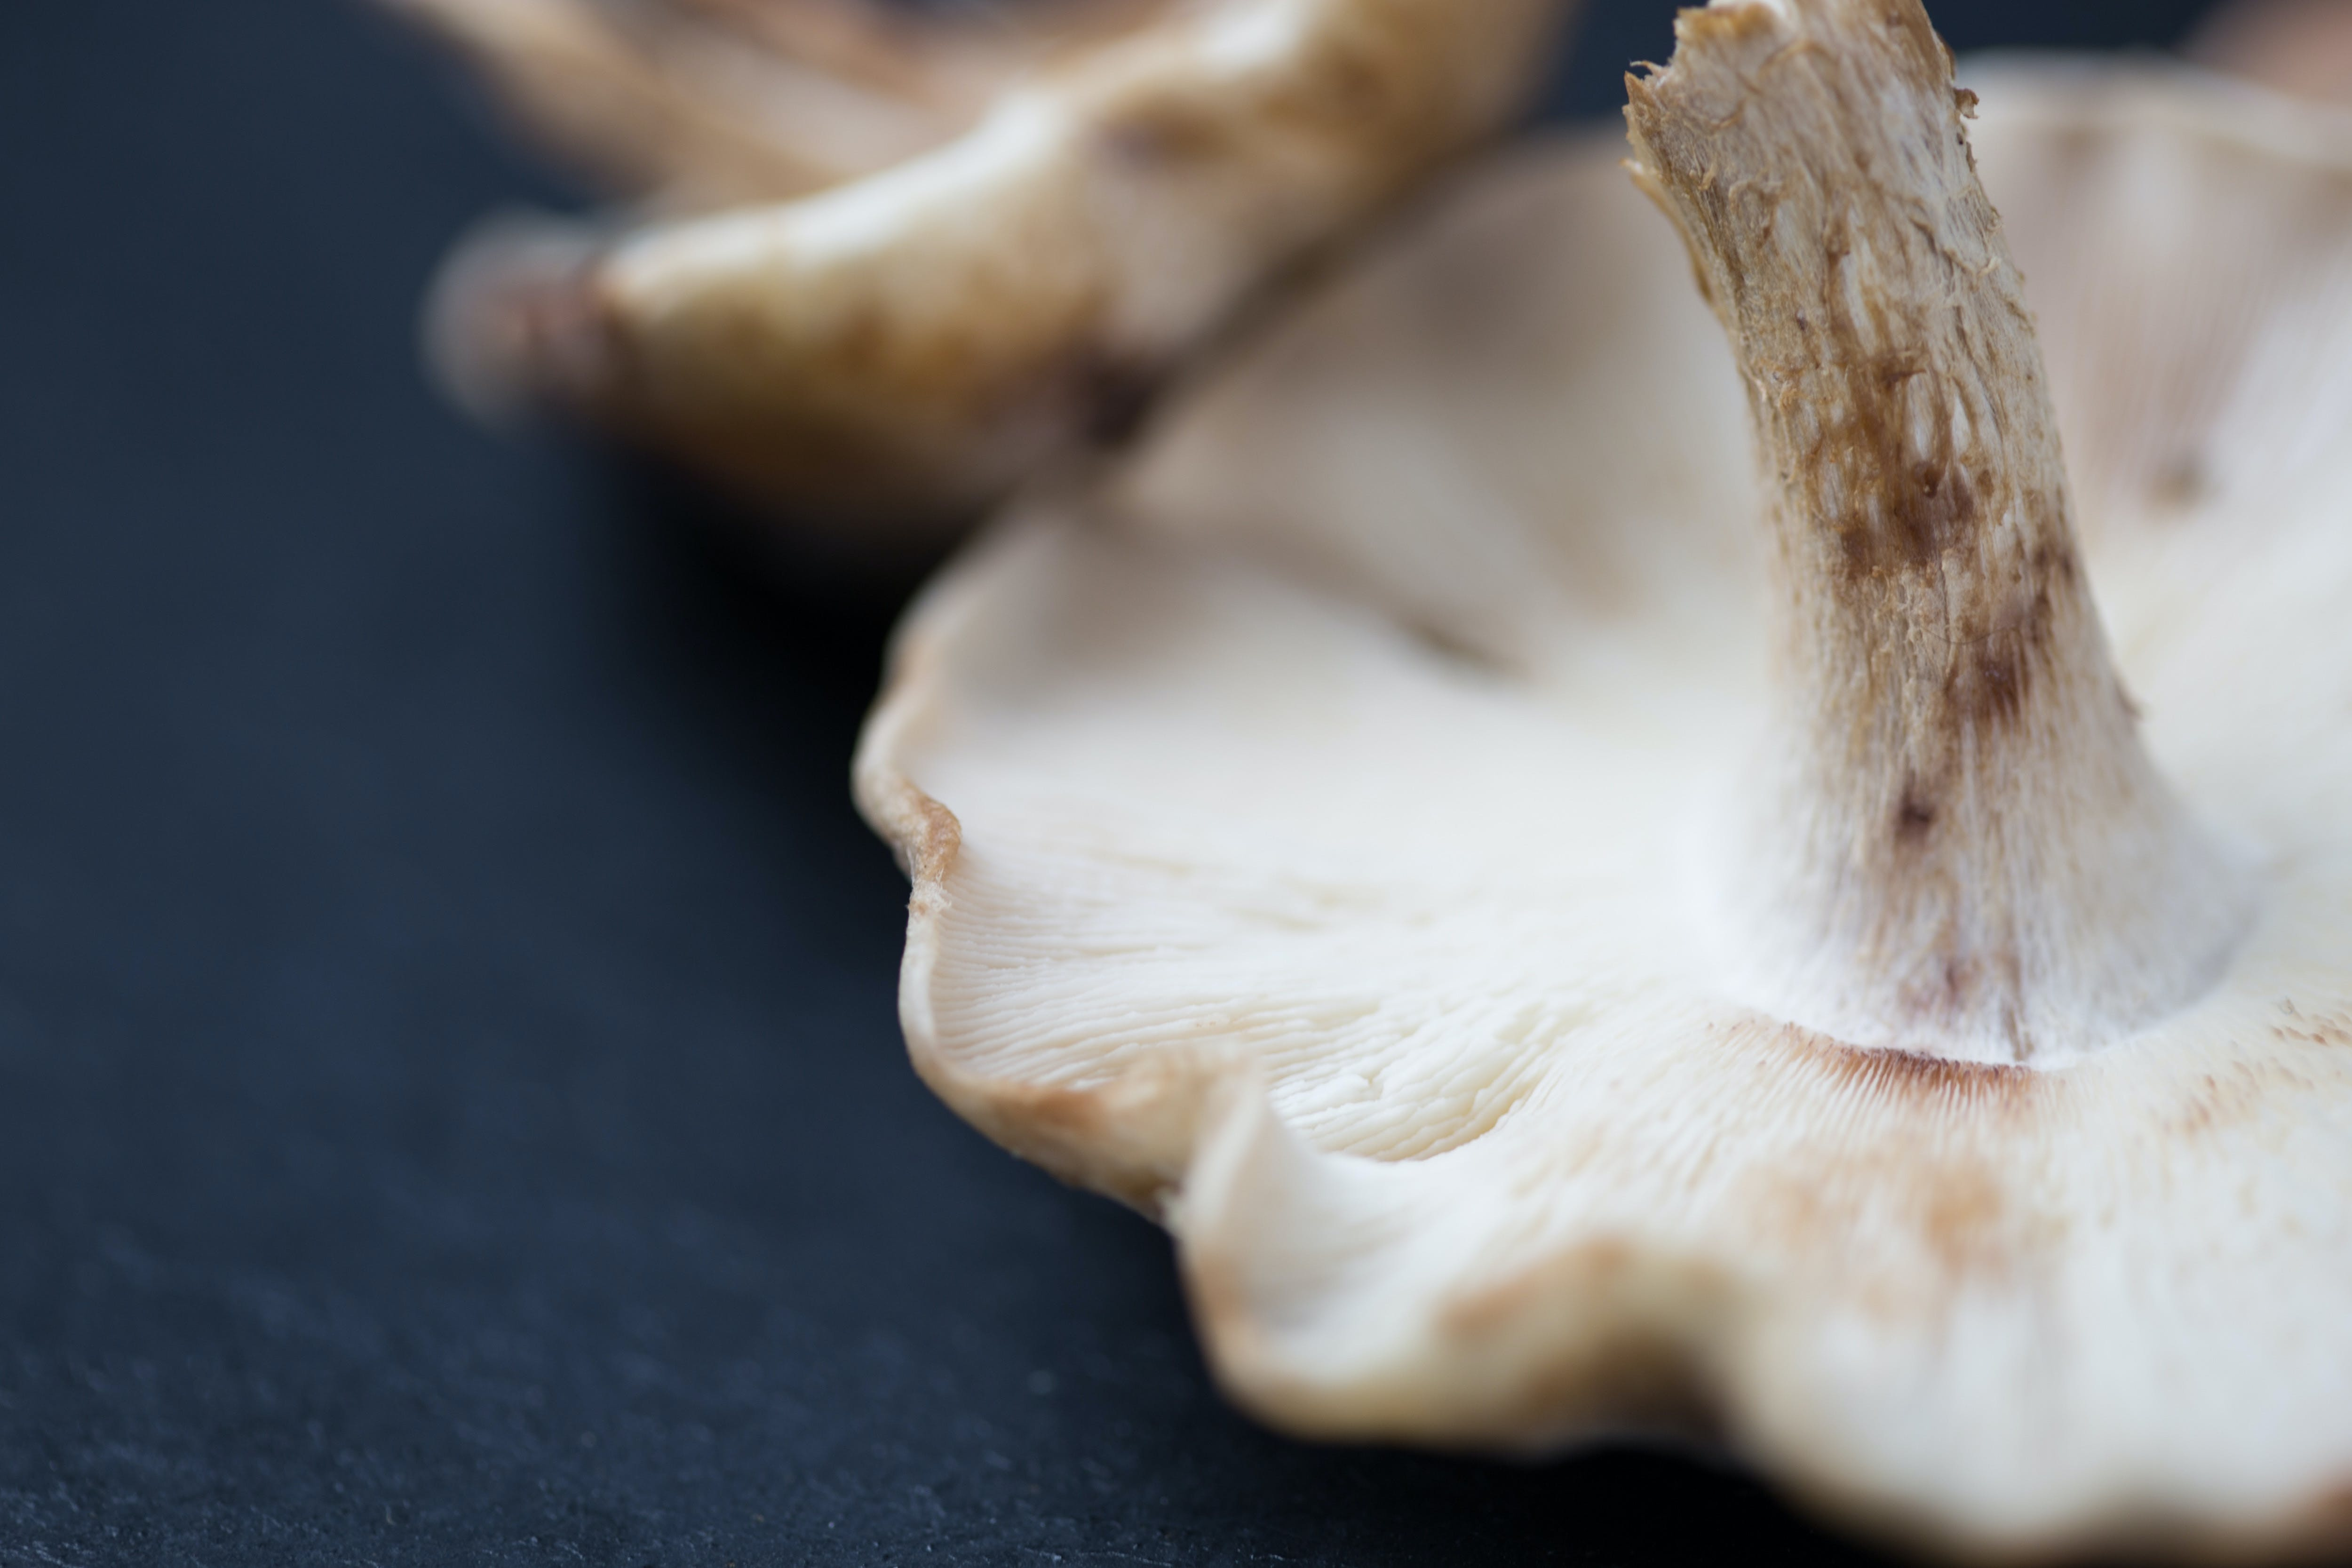 Gratis stockfoto met binnen, biologisch, champignons, close-up